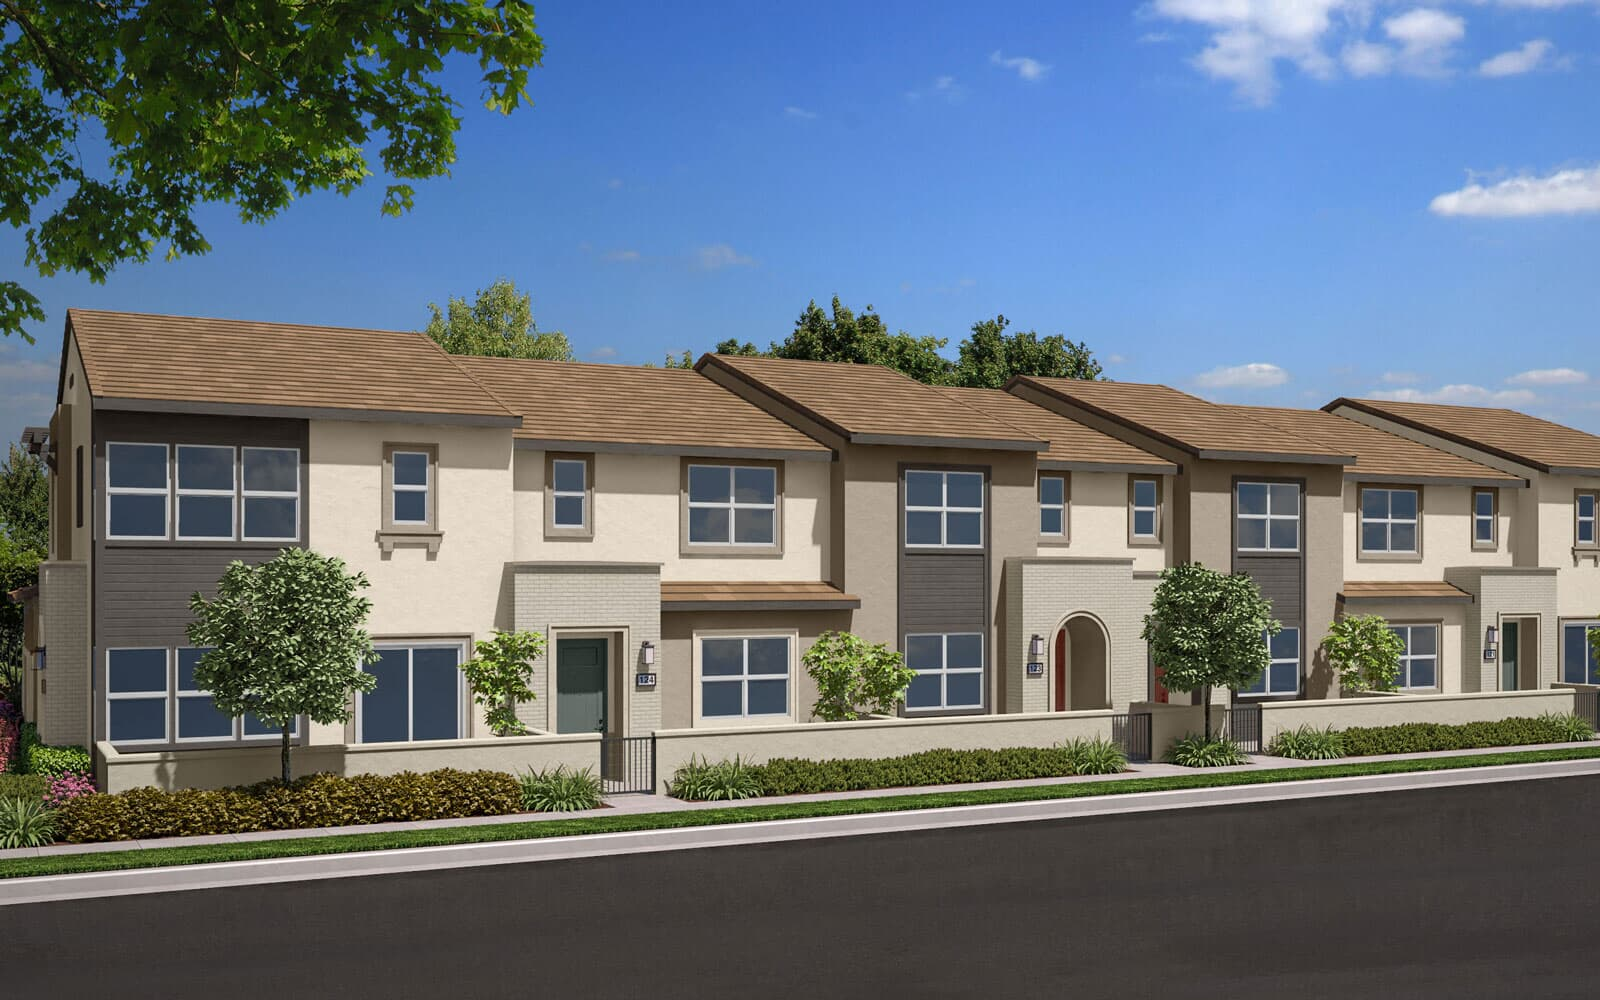 Exterior Rendering B Scheme 4 | Indigo Canvas Park at New Haven in Ontario Ranch, CA | Brookfield Residential